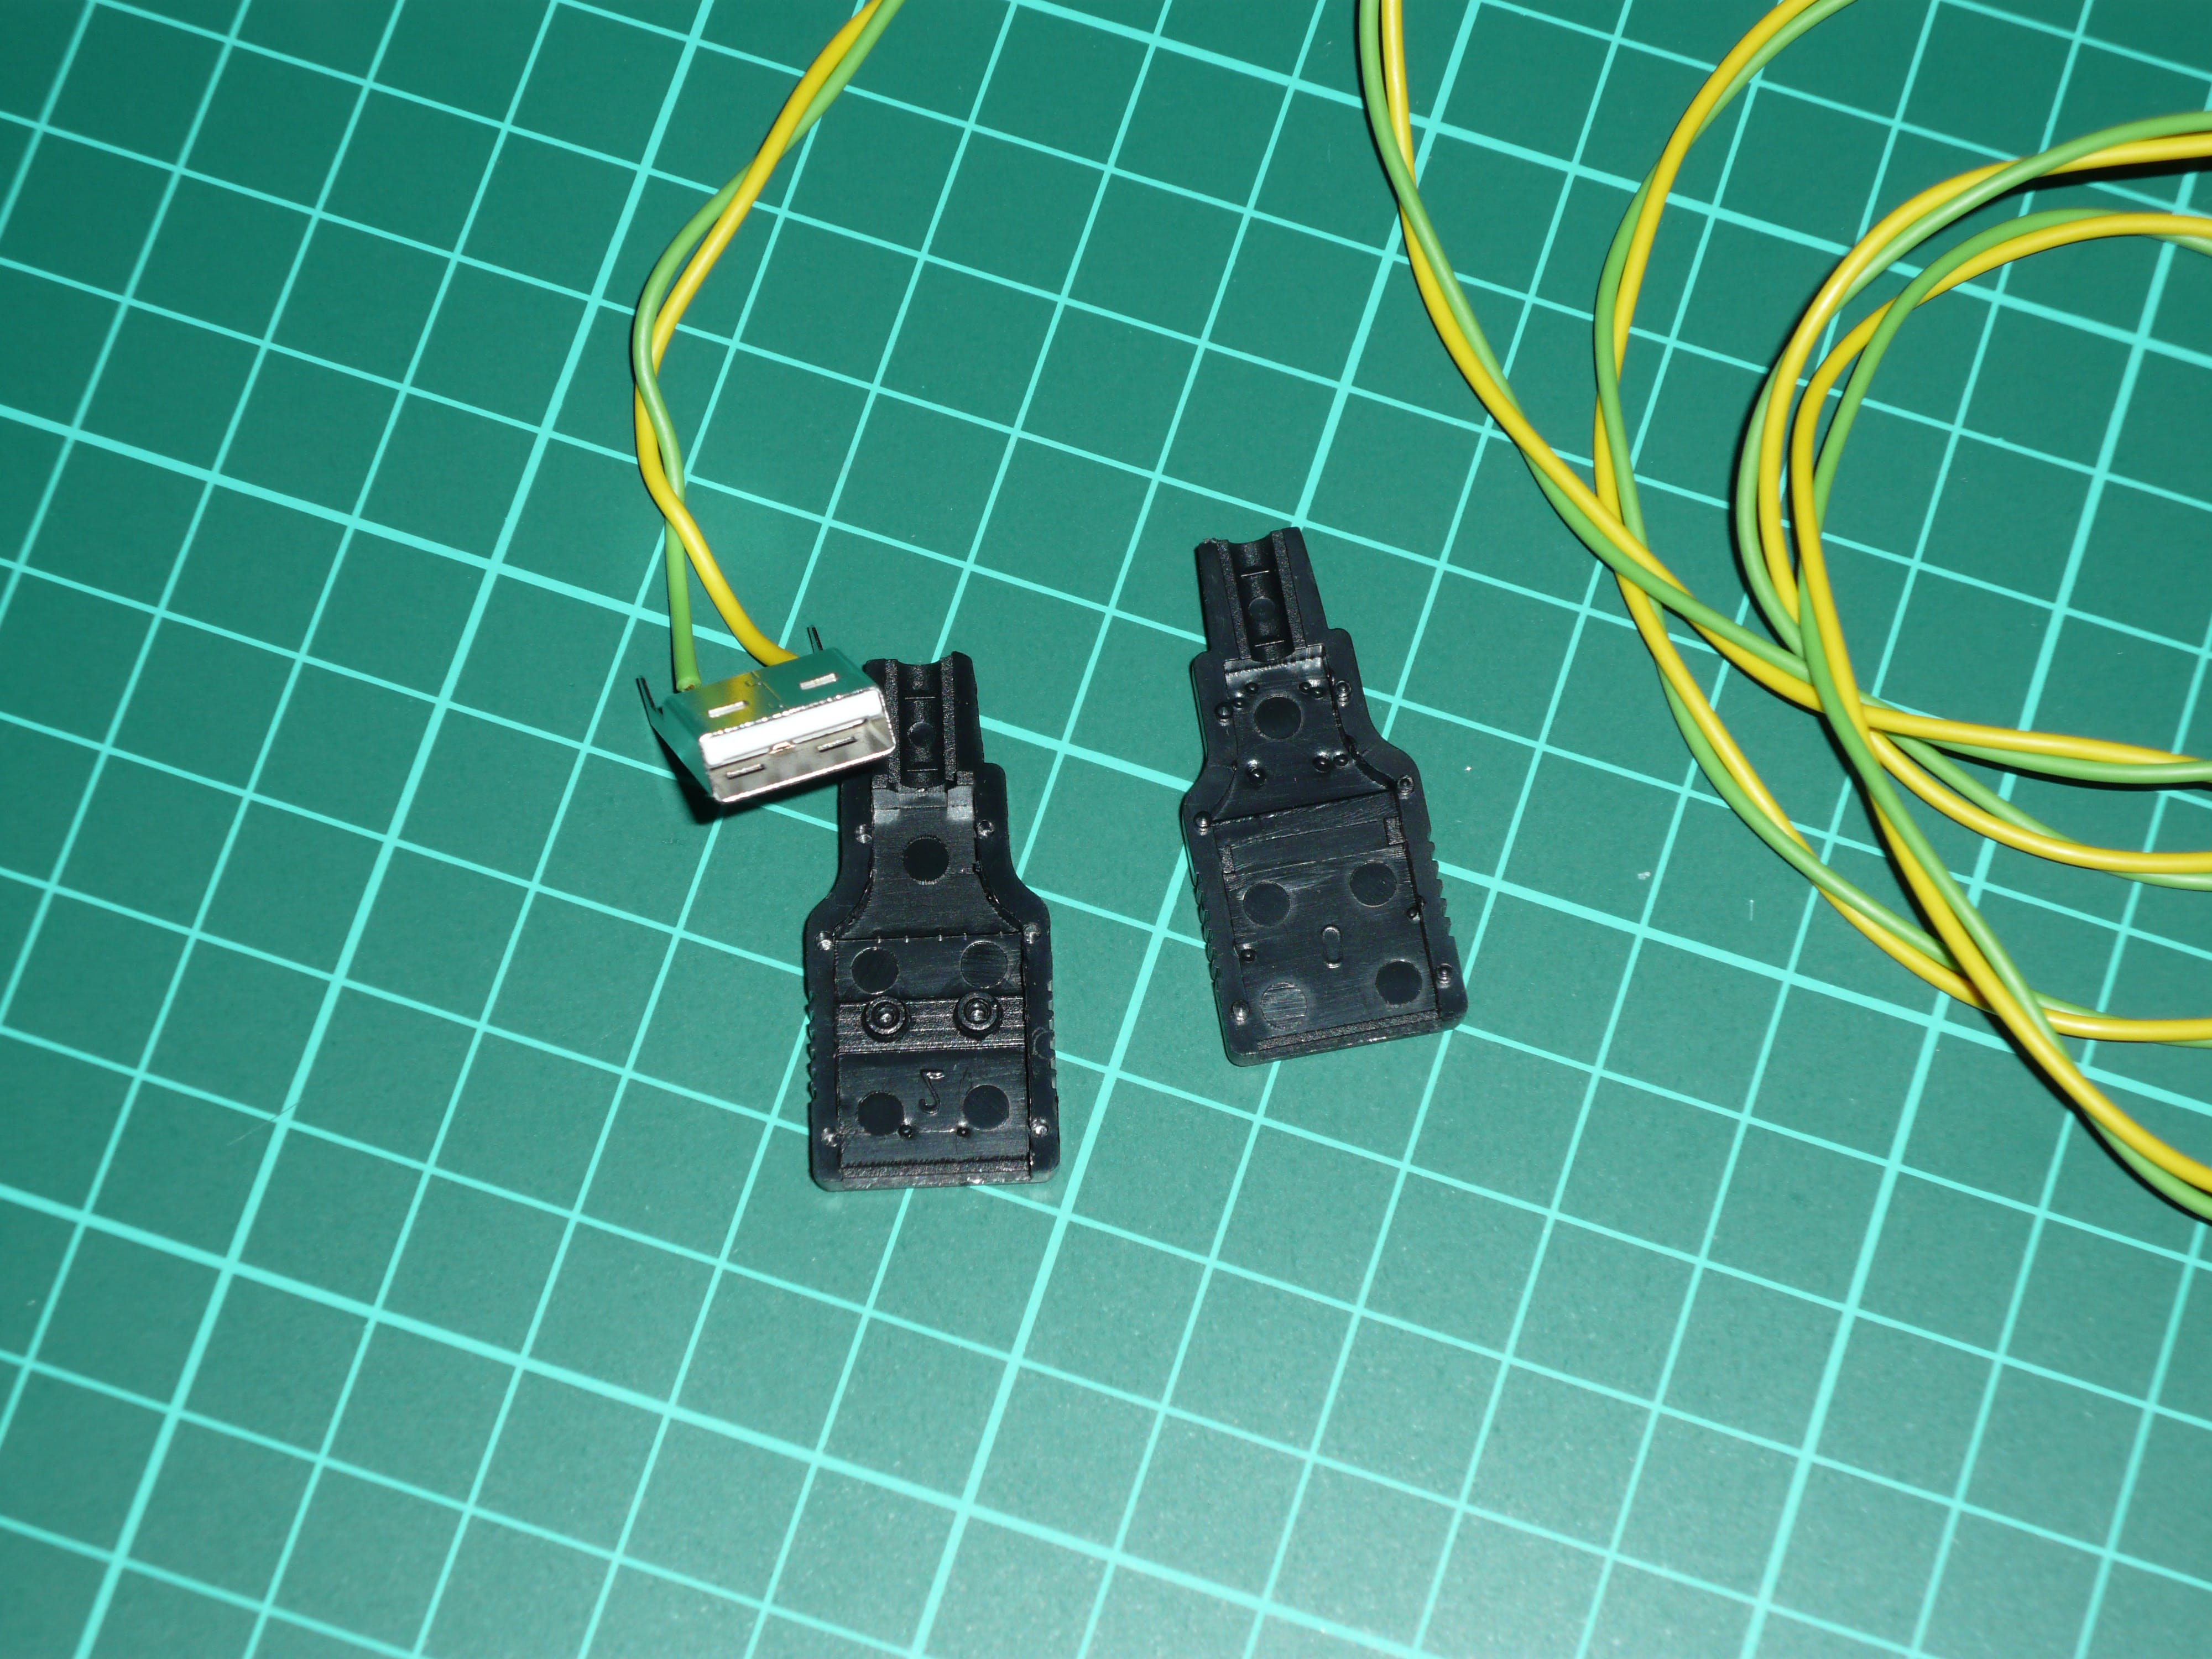 USB male plug seen from front side